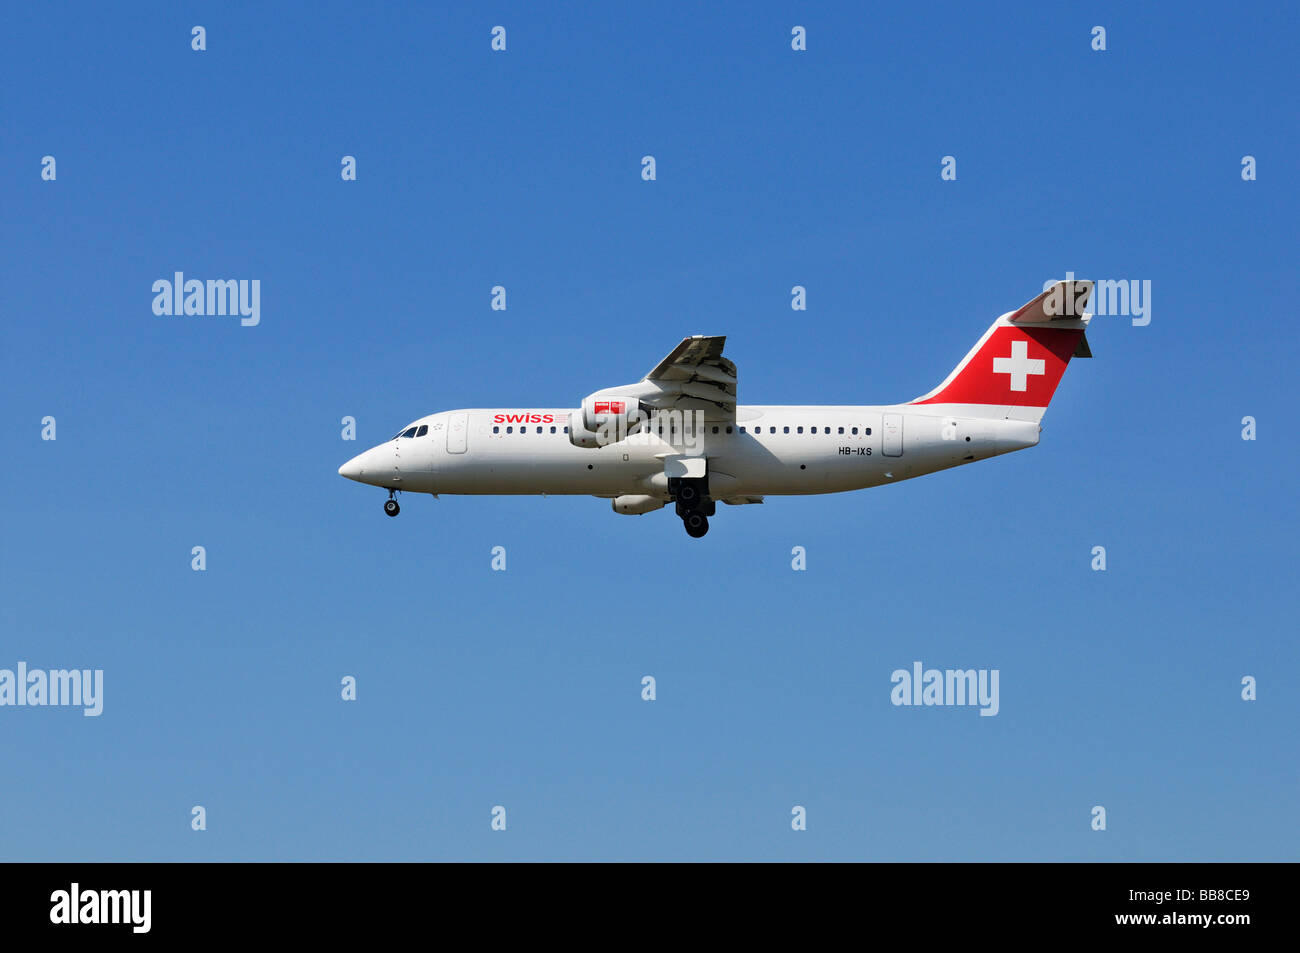 Swiss Air airplane Swiss Avro Regional Jet RJ100 is swinging out its landing gear - Stock Image